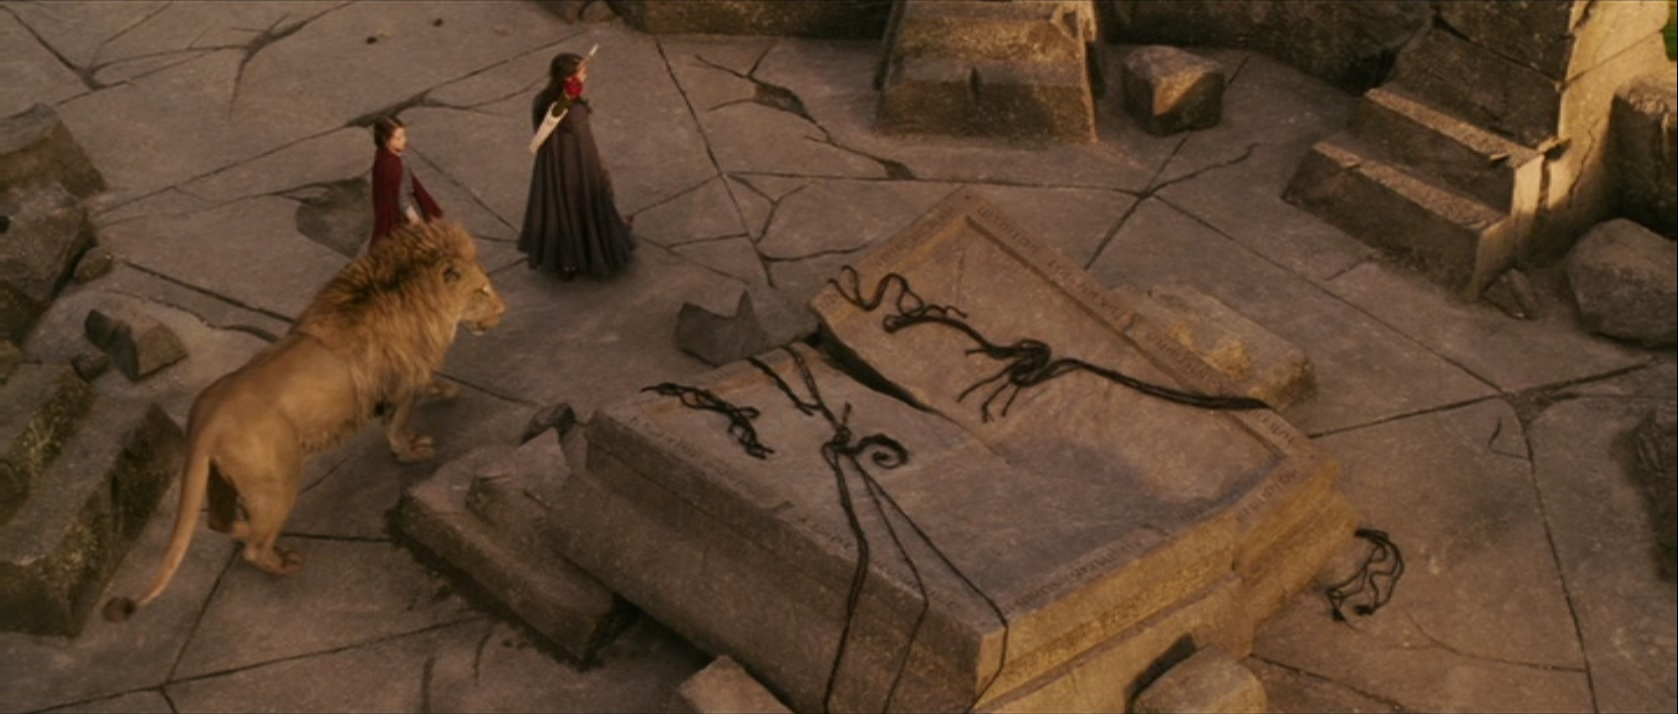 stone table the chronicles of narnia wiki fandom powered by wikia 9